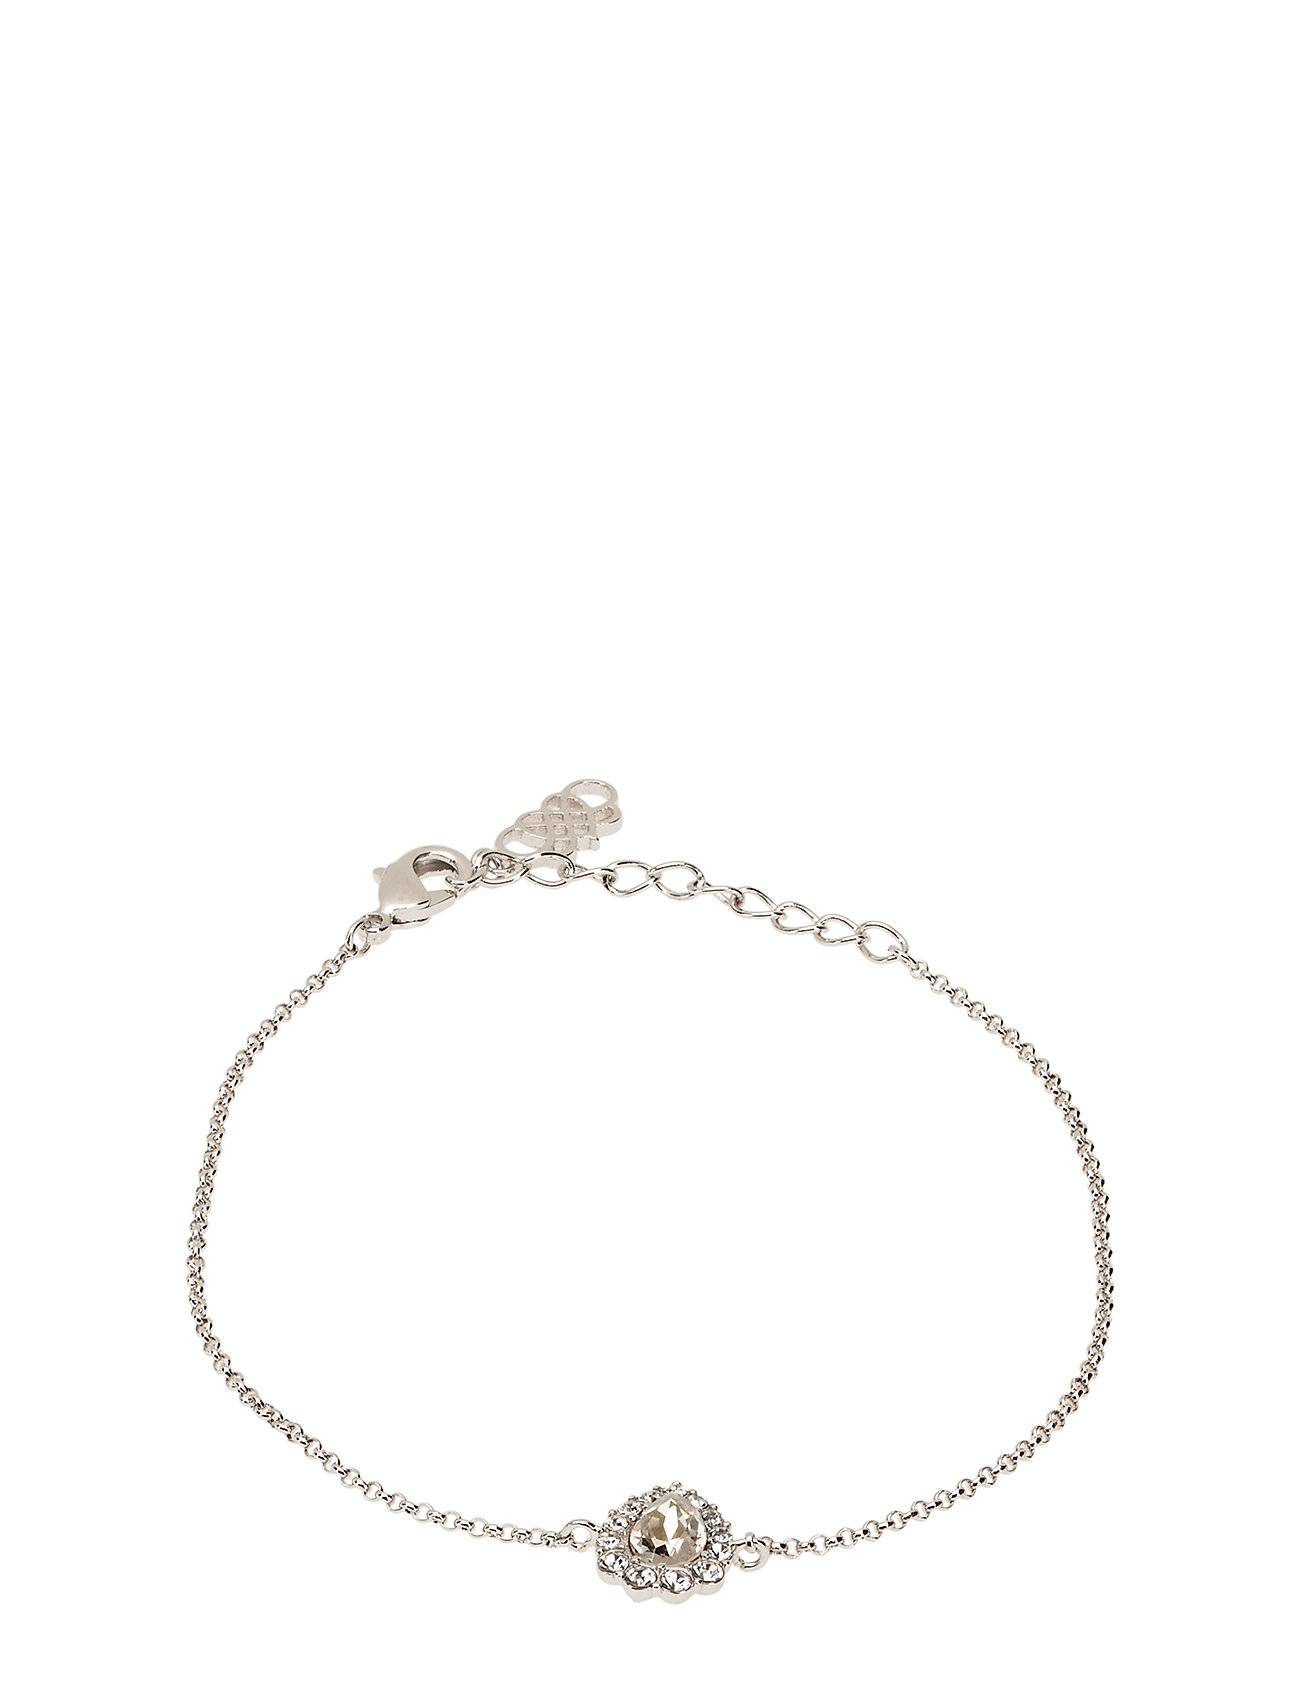 LILY AND ROSE Amelie Bracelet - Crystal/Silver Accessories Jewellery Bracelets Chain Bracelets Hopea LILY AND ROSE